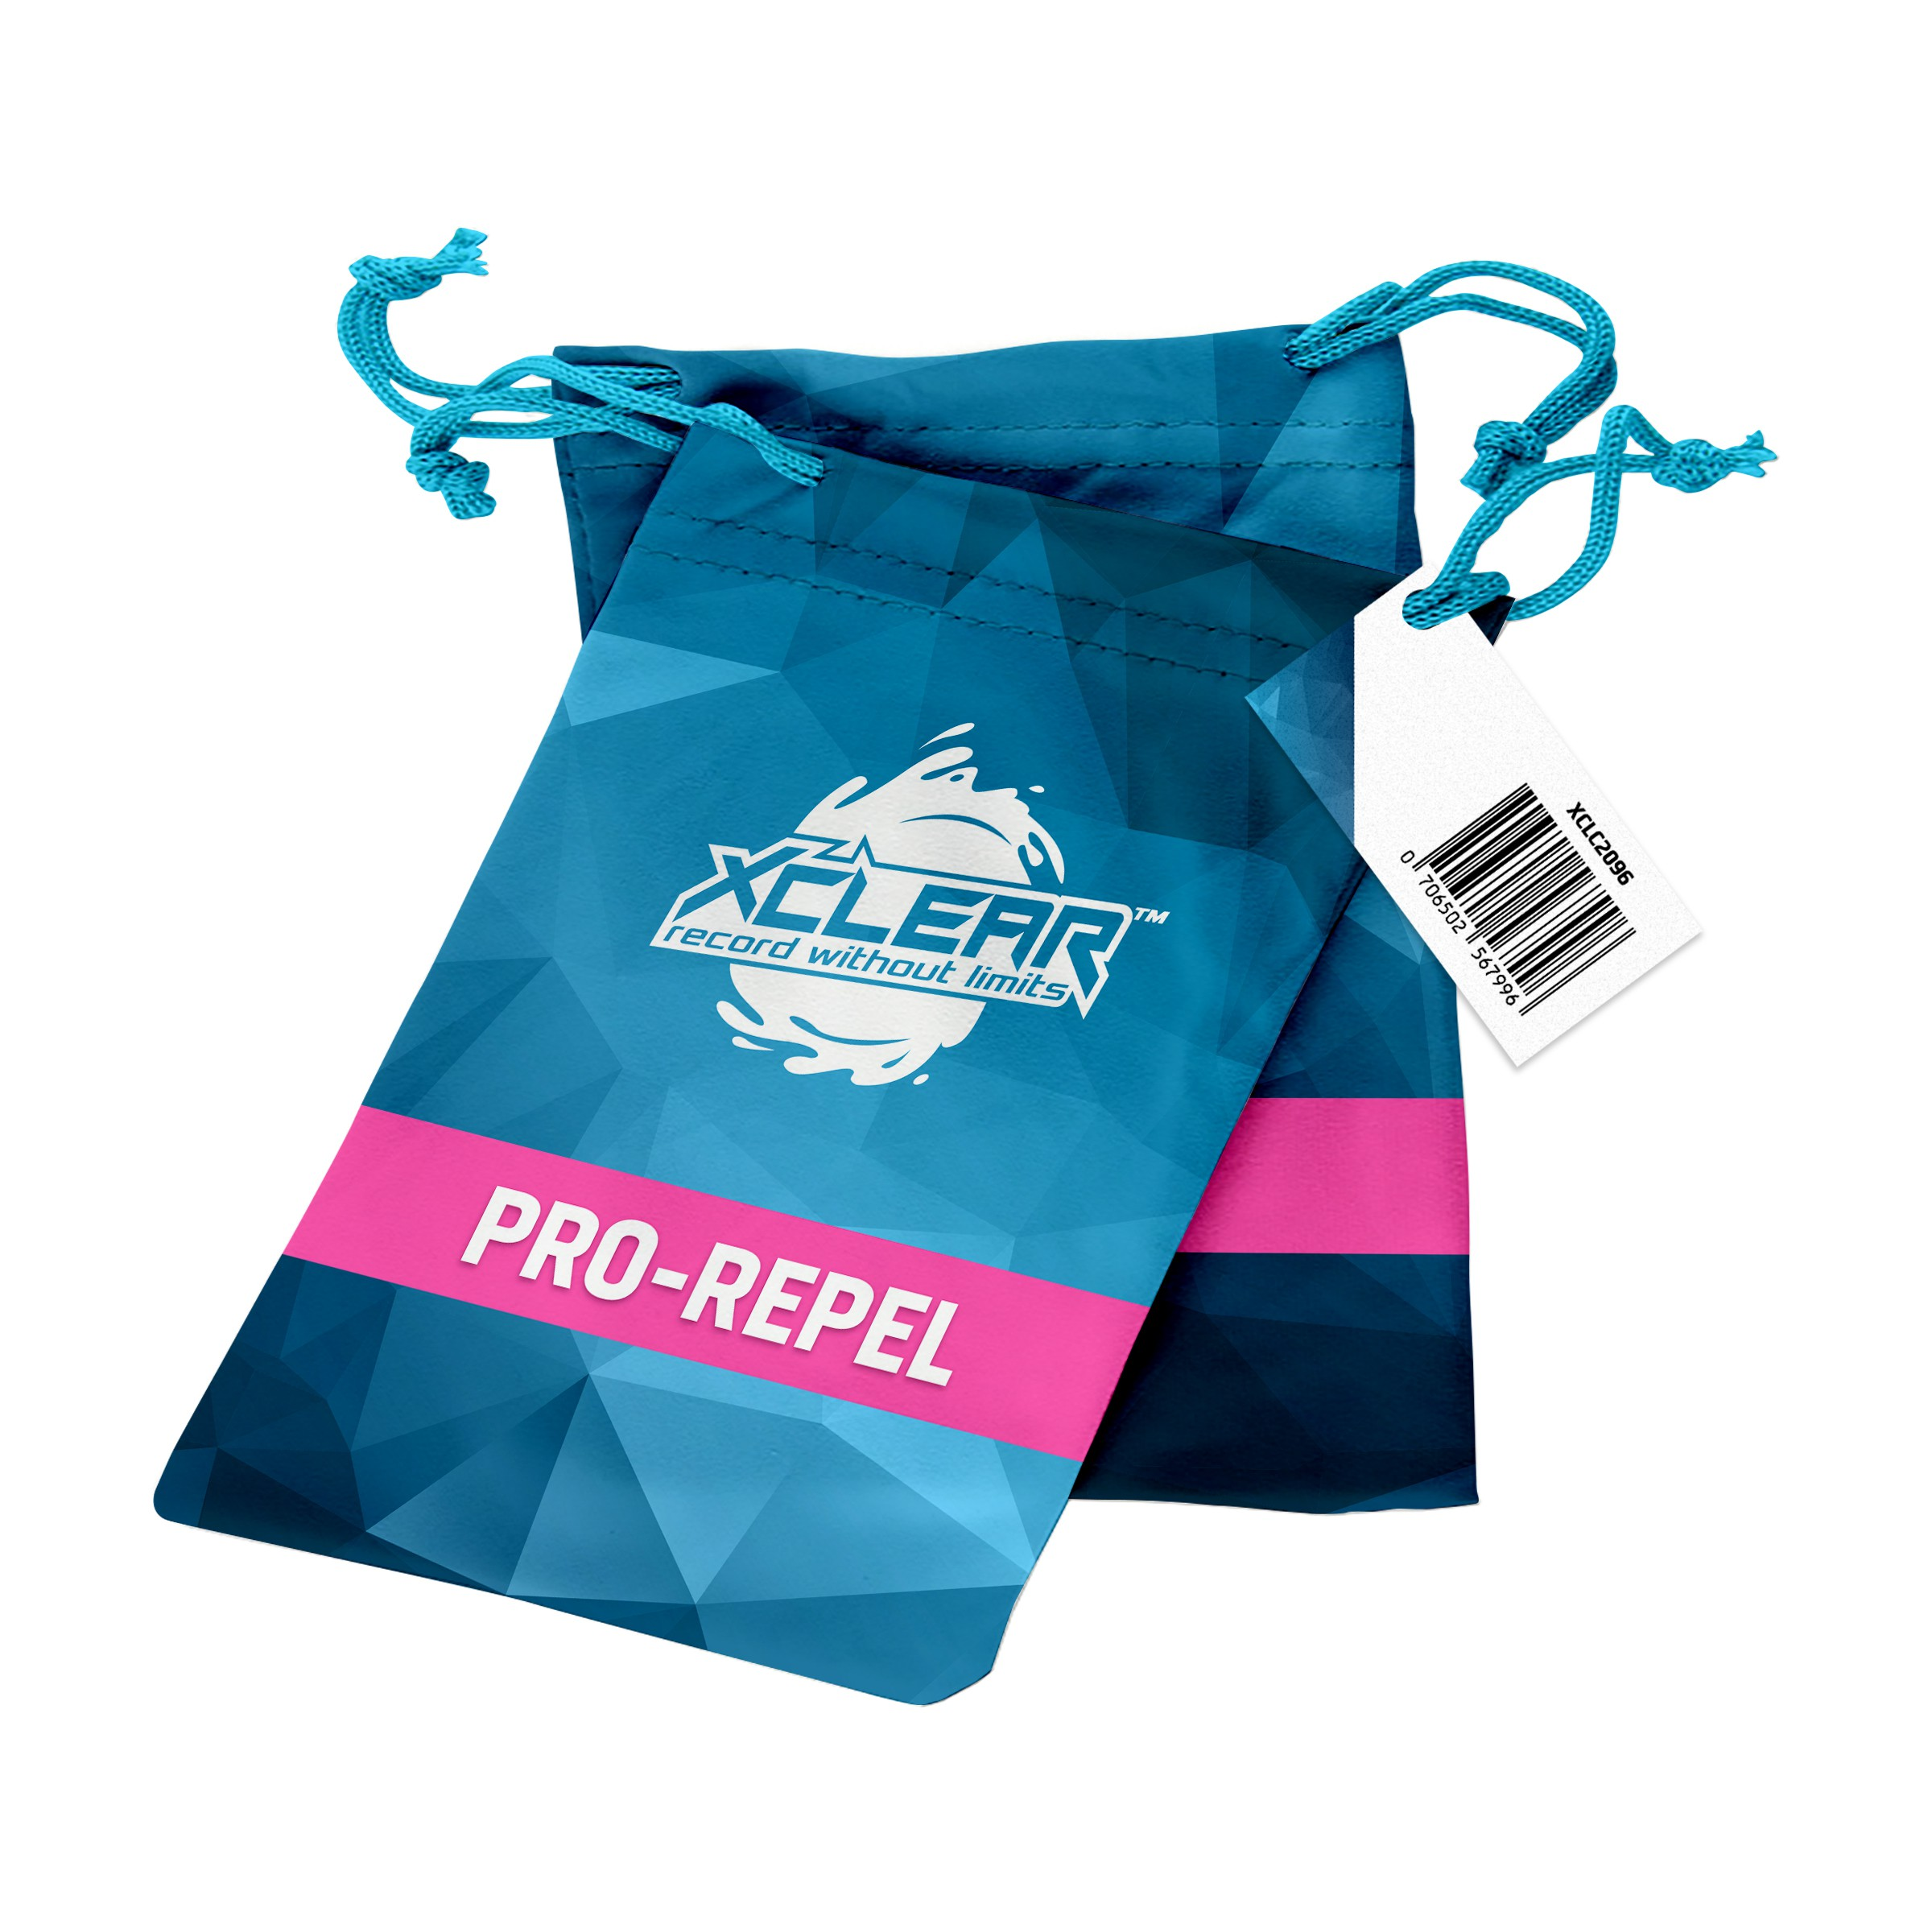 PRO-REPEL Booster Liquid (re design of an old project)